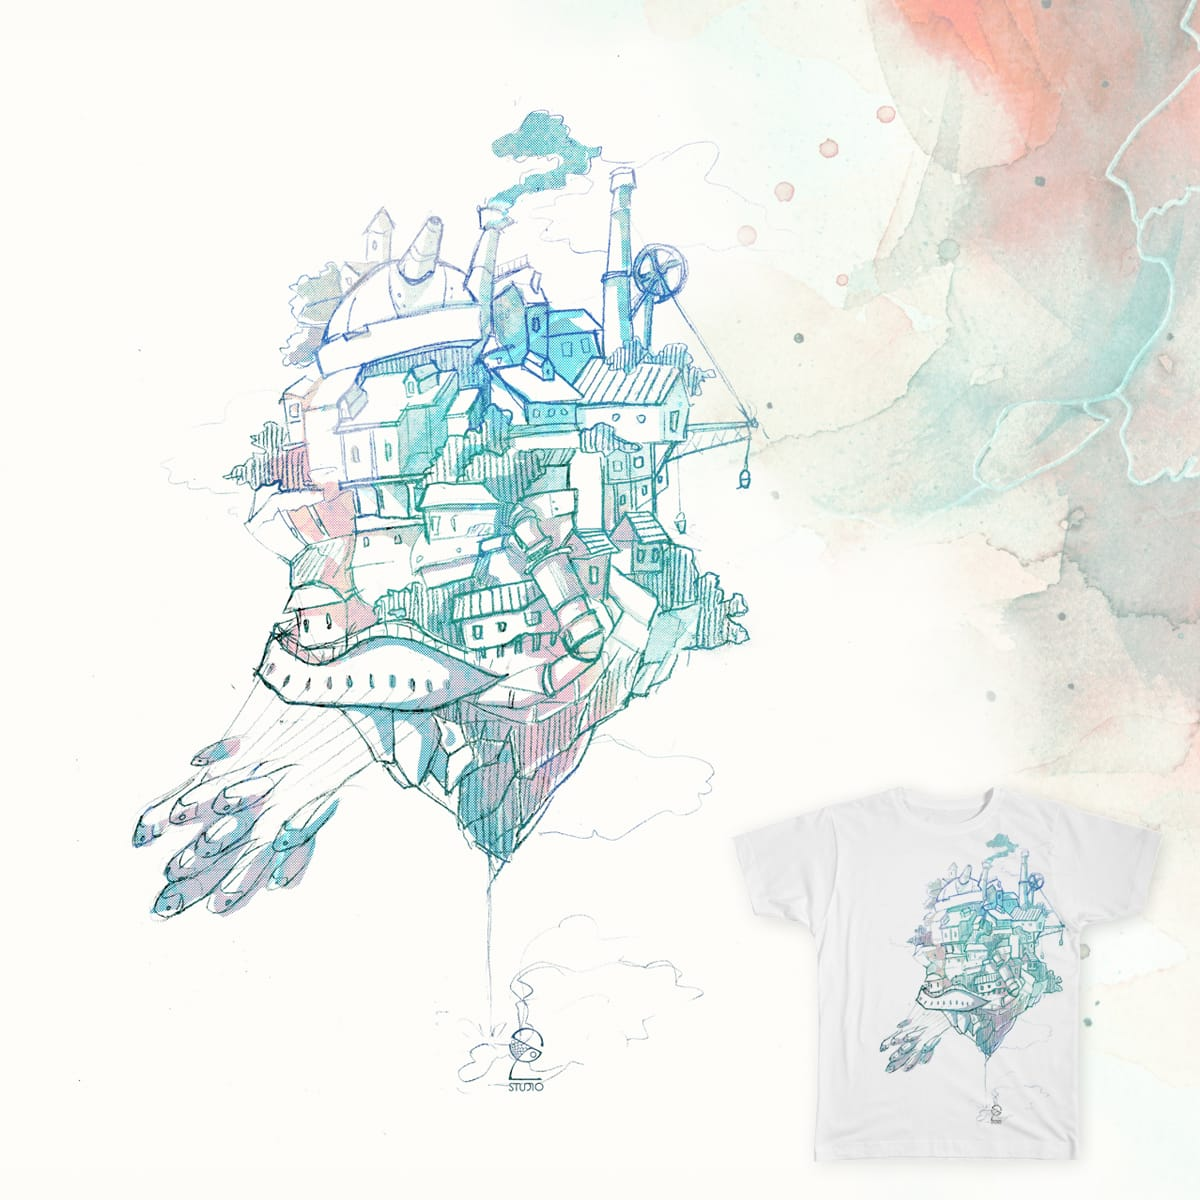 Home by solstudio on Threadless